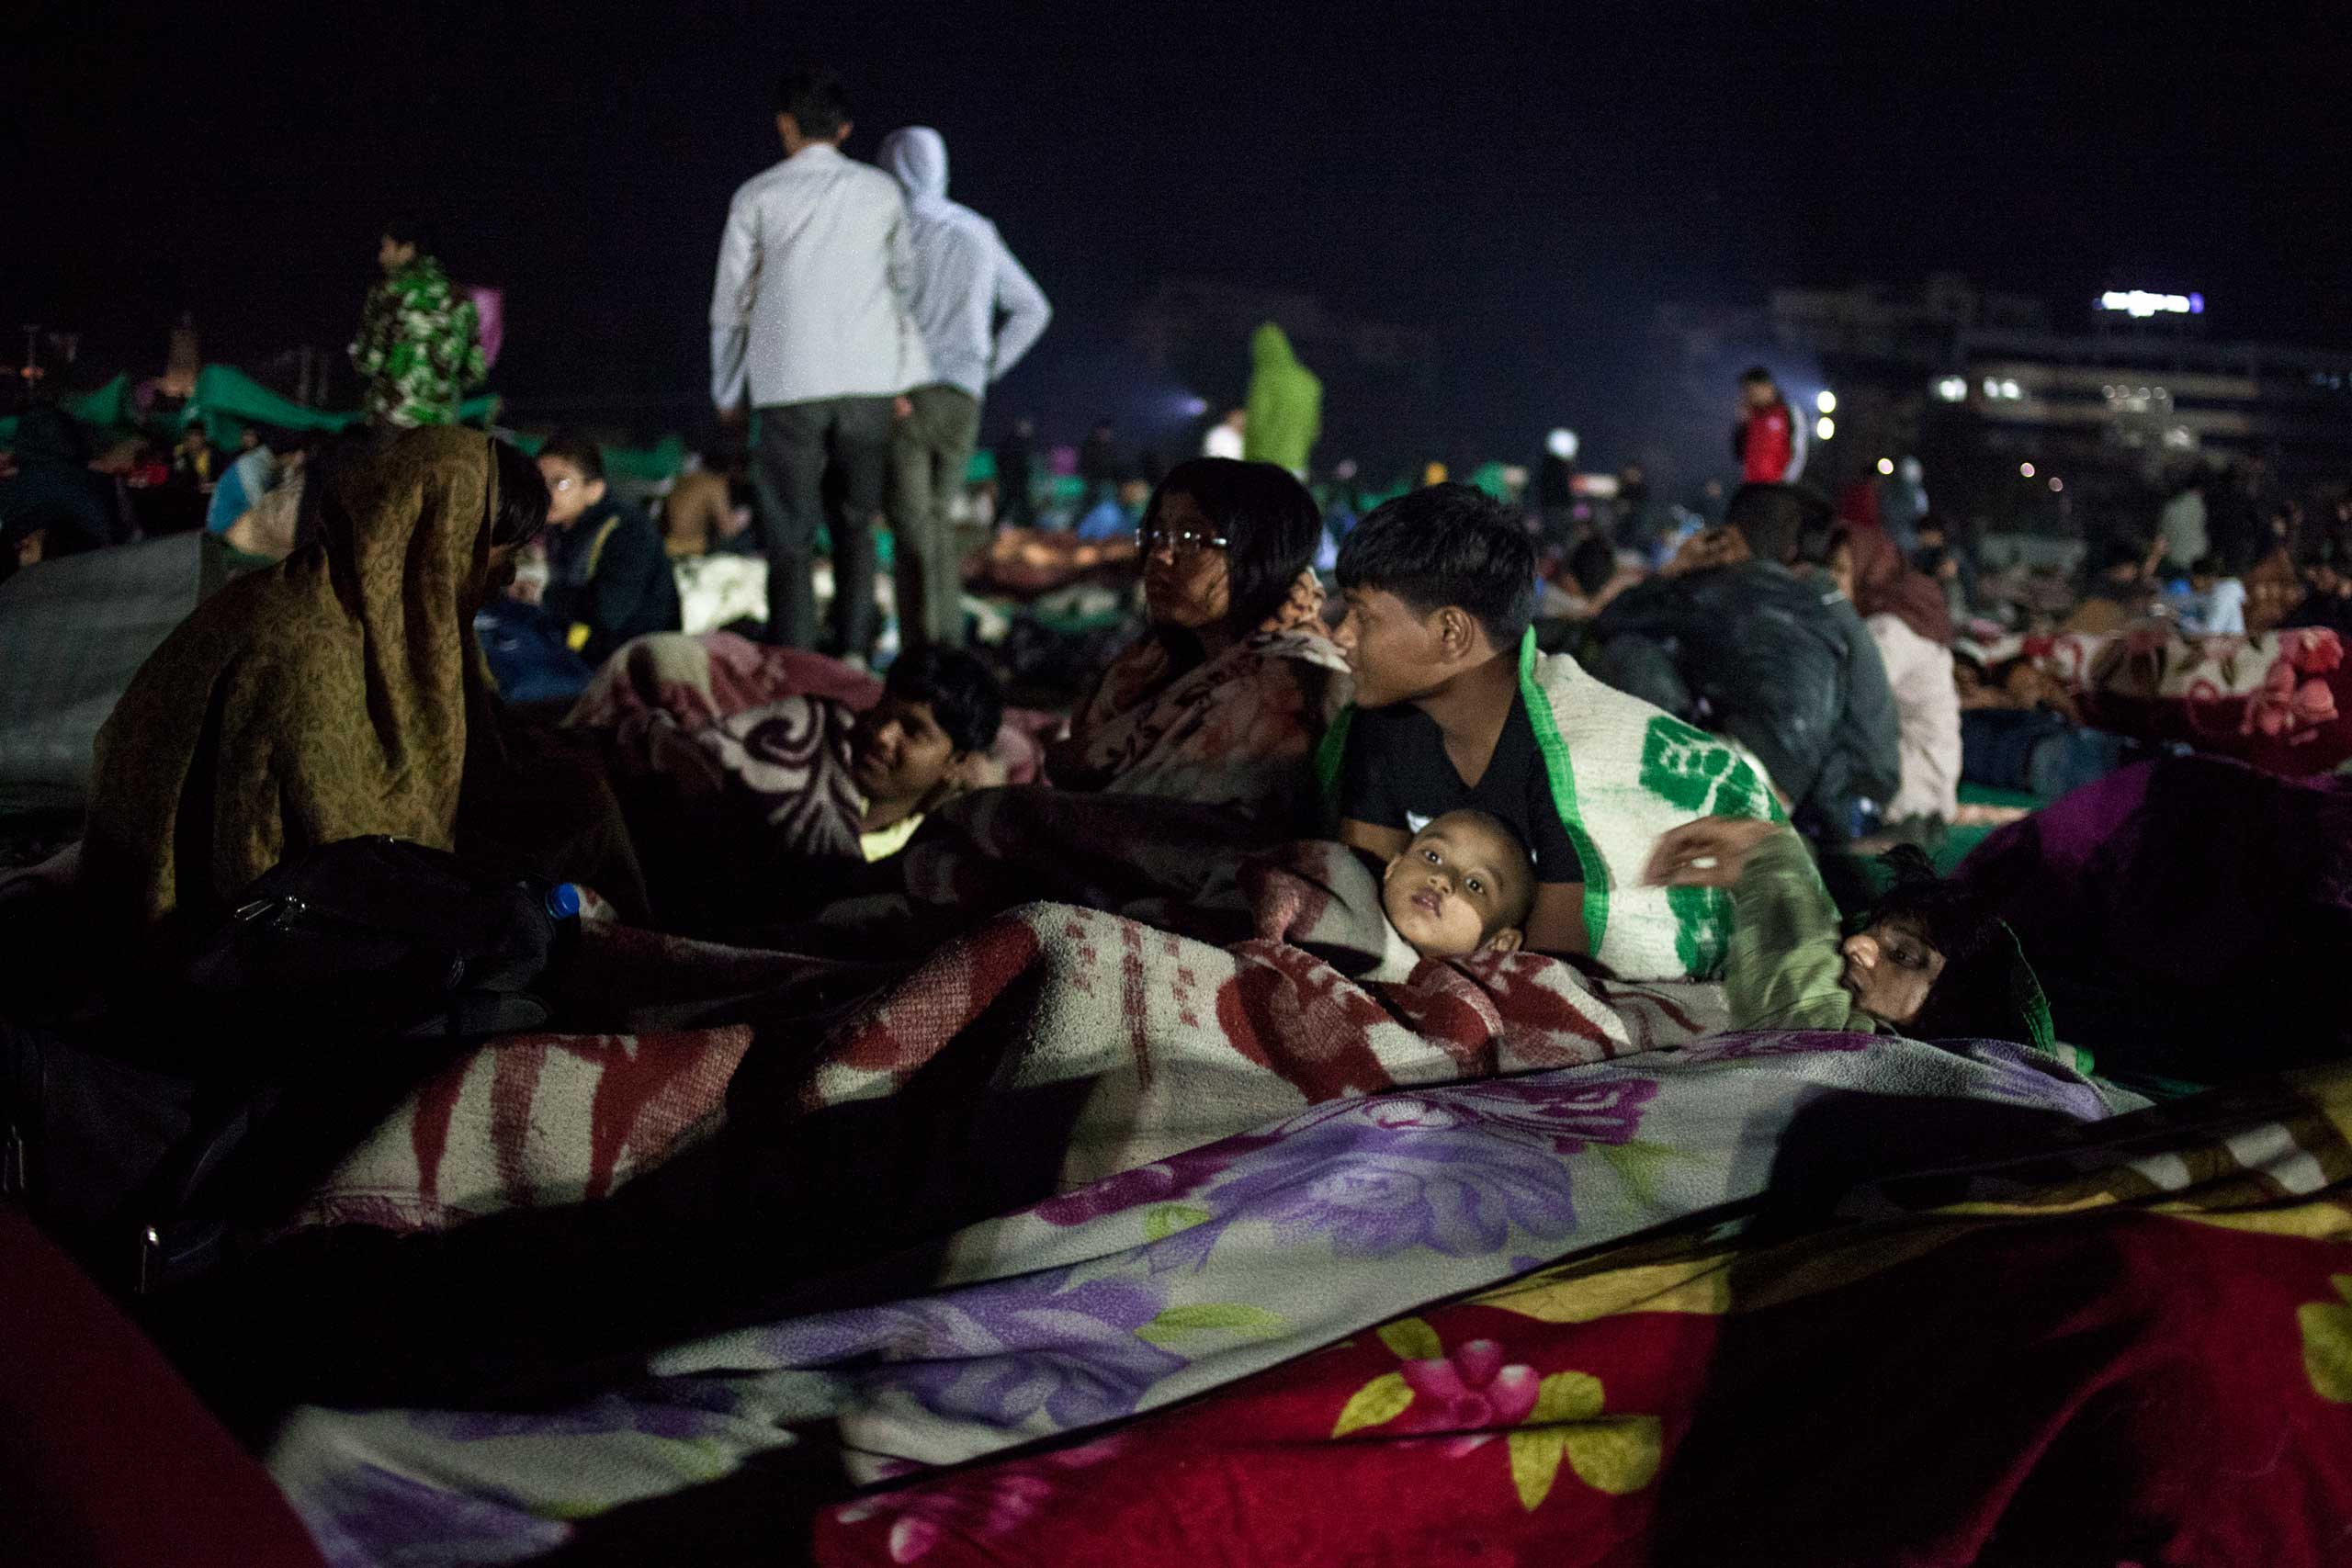 People gathered at Tundikhel, an open ground in central Kathmandu on April 25, 2015. Many families spent their nights there in fear of aftershocks.